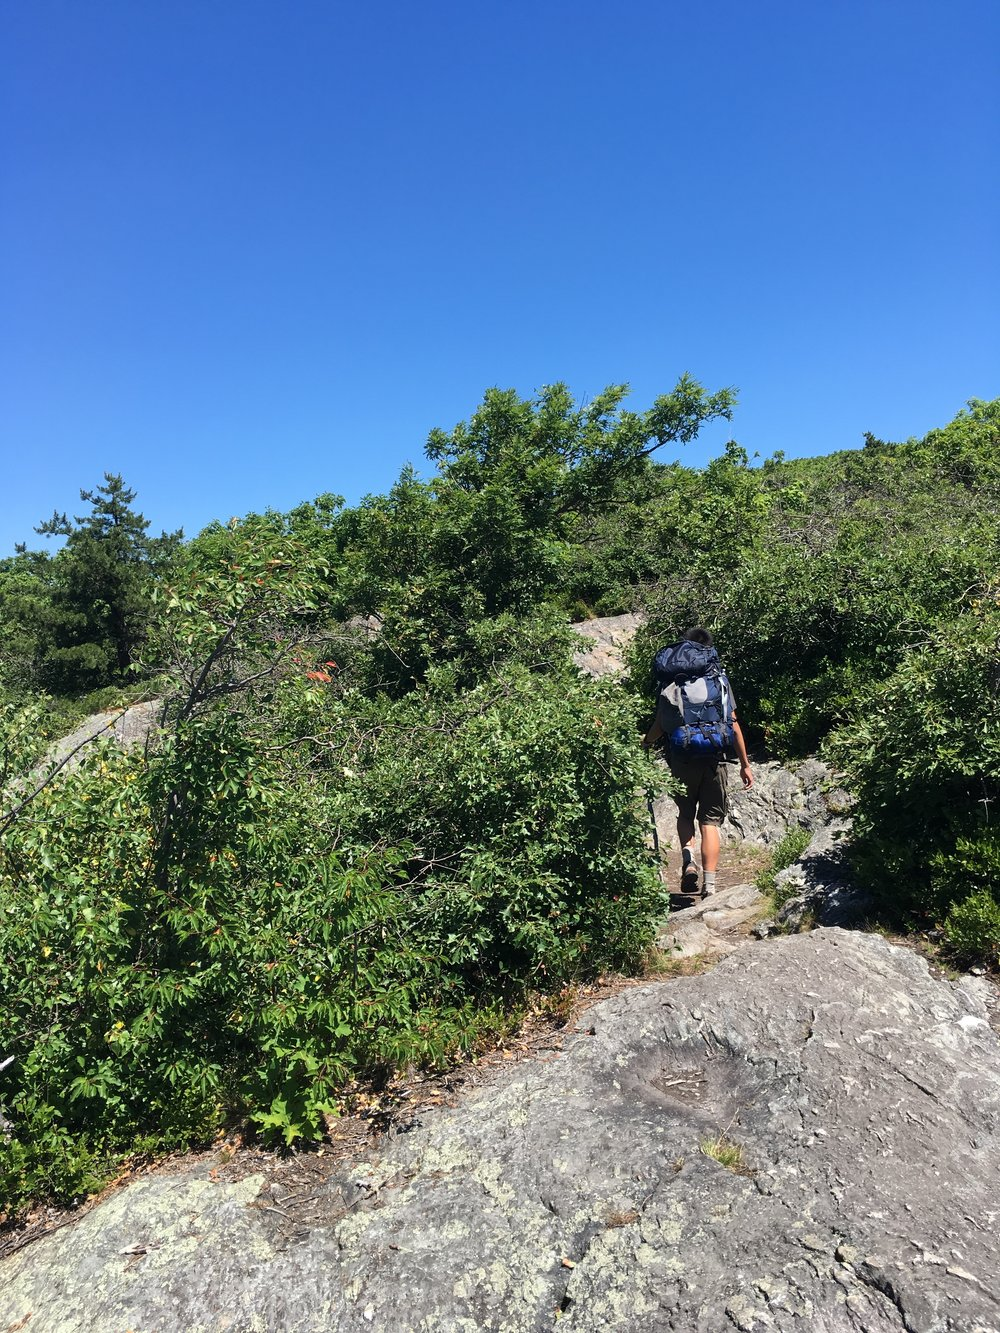 Hiking along the Appalachian Trail to Bear Mountain, the highest point in CT.